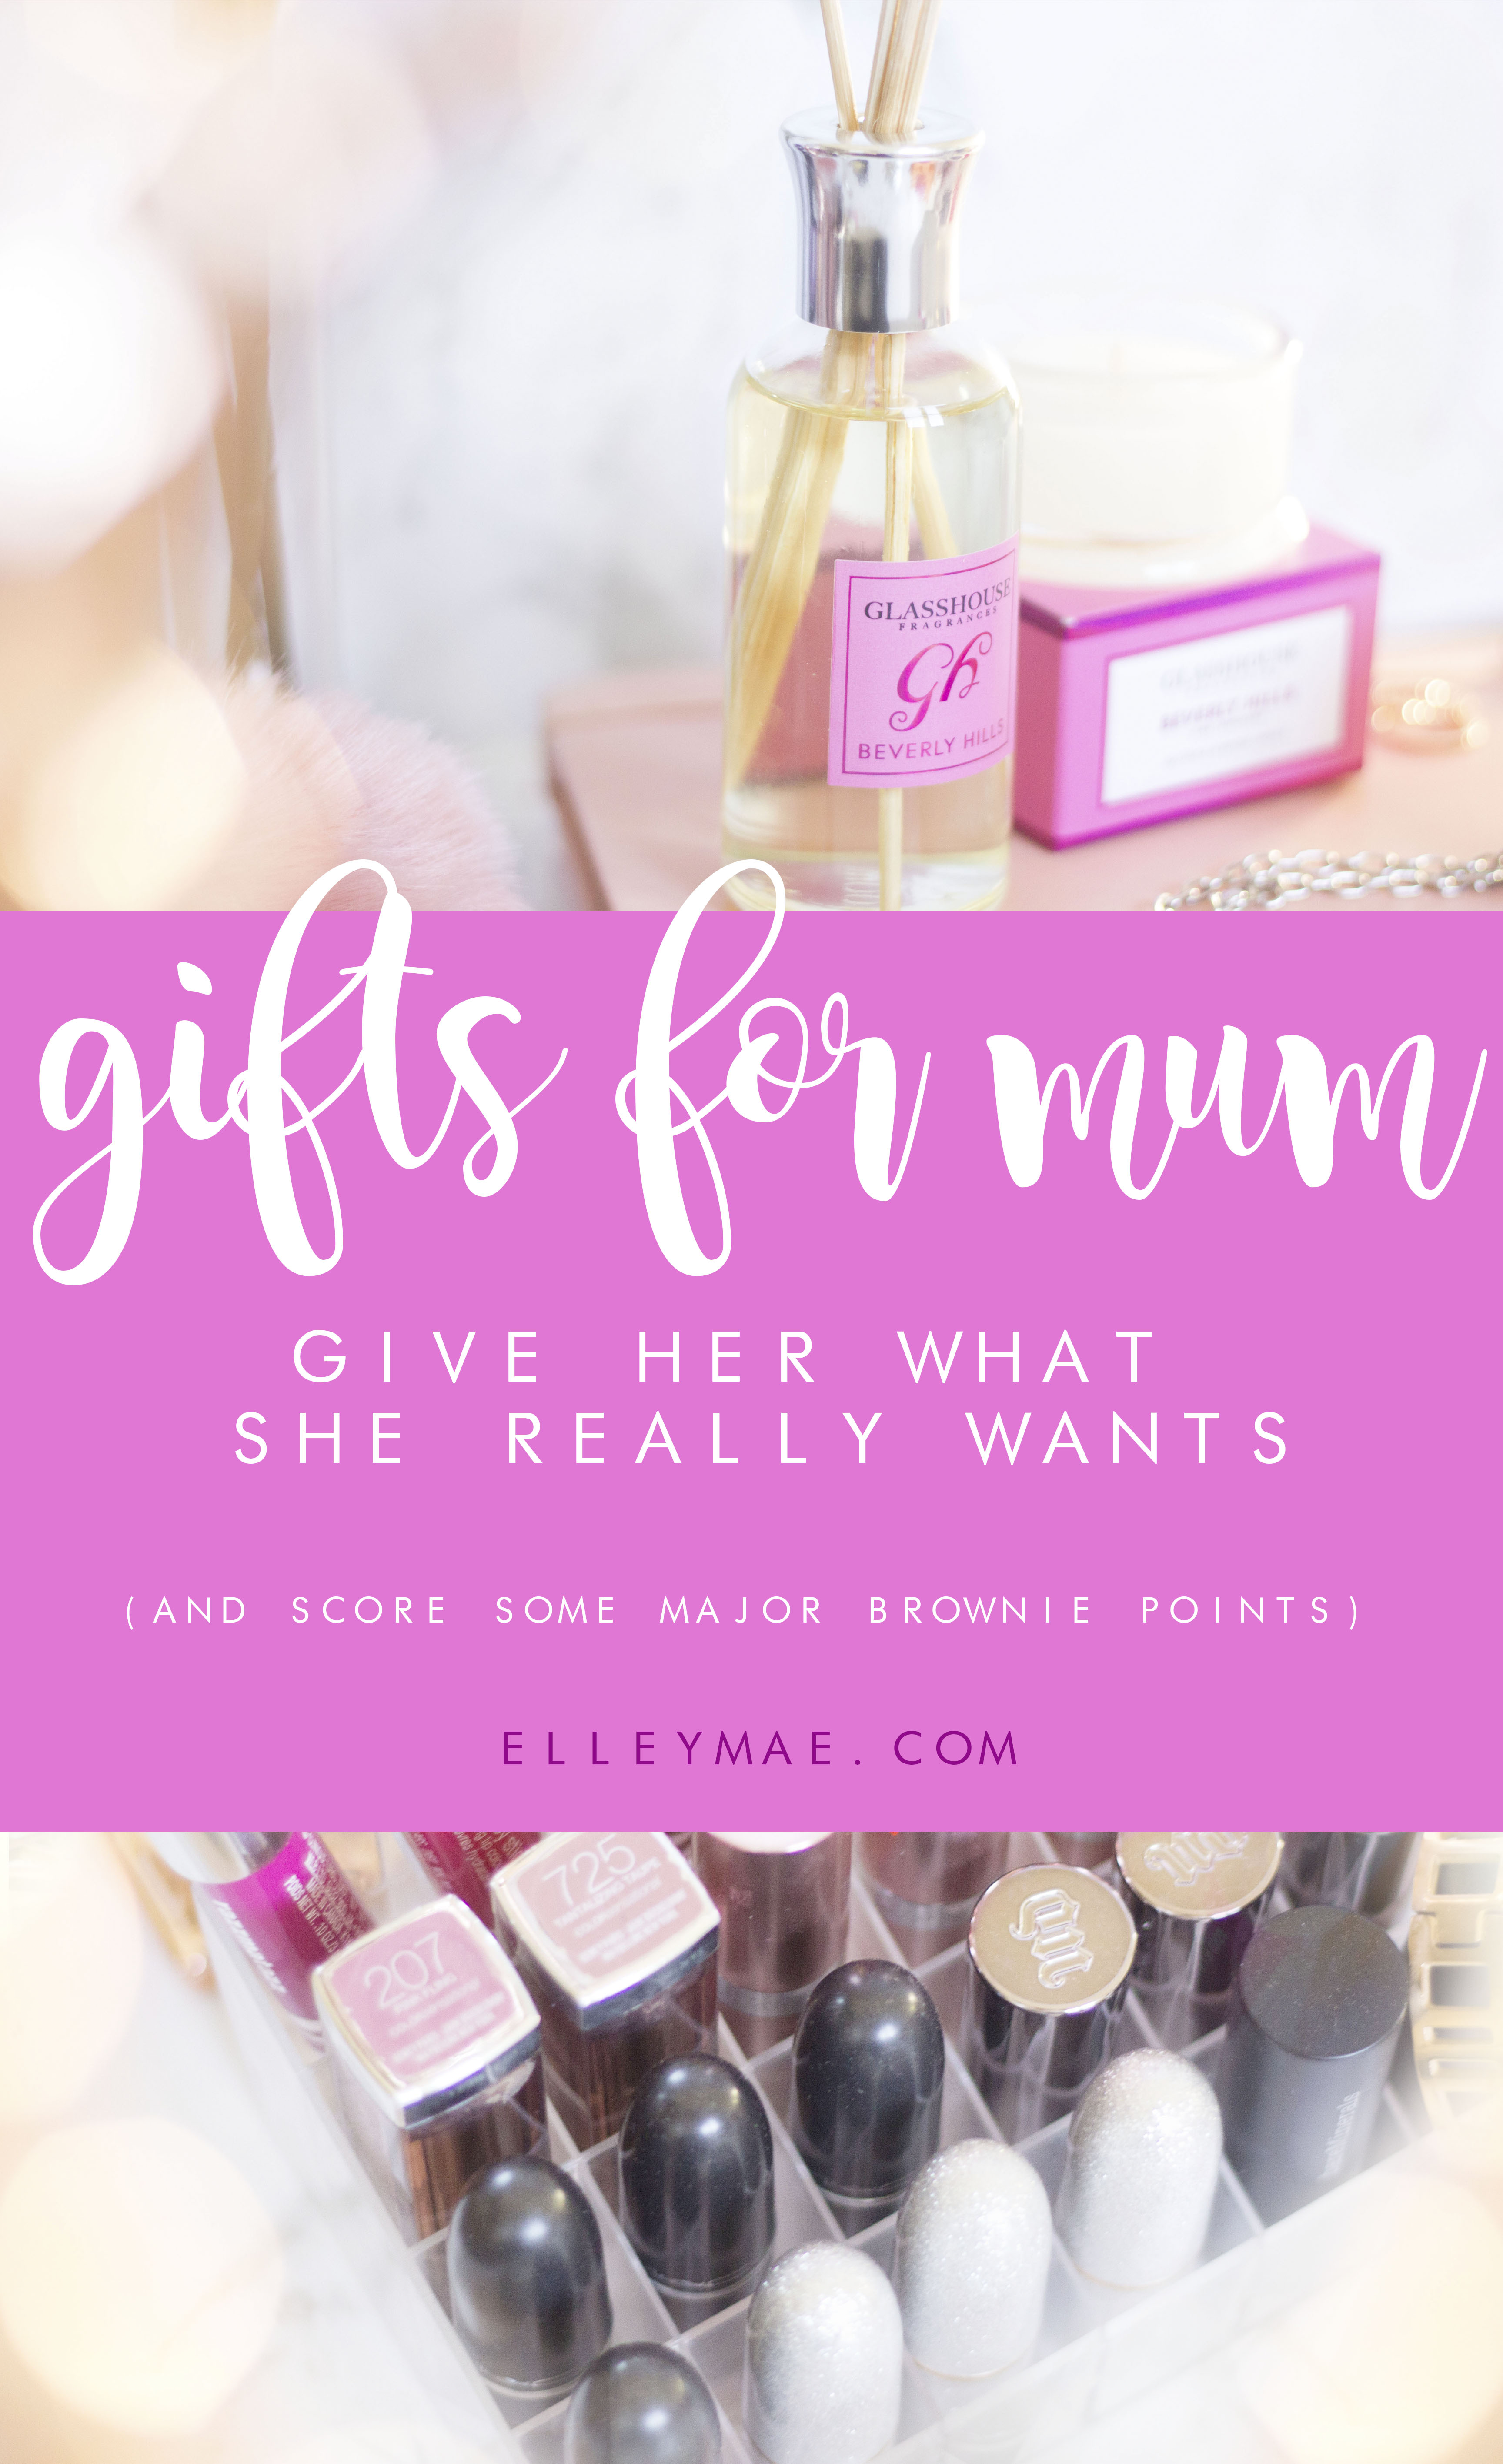 How To Score Brownie Points This Mothers Day | The Best Gift Ideas For Mum | ElleyMae.com